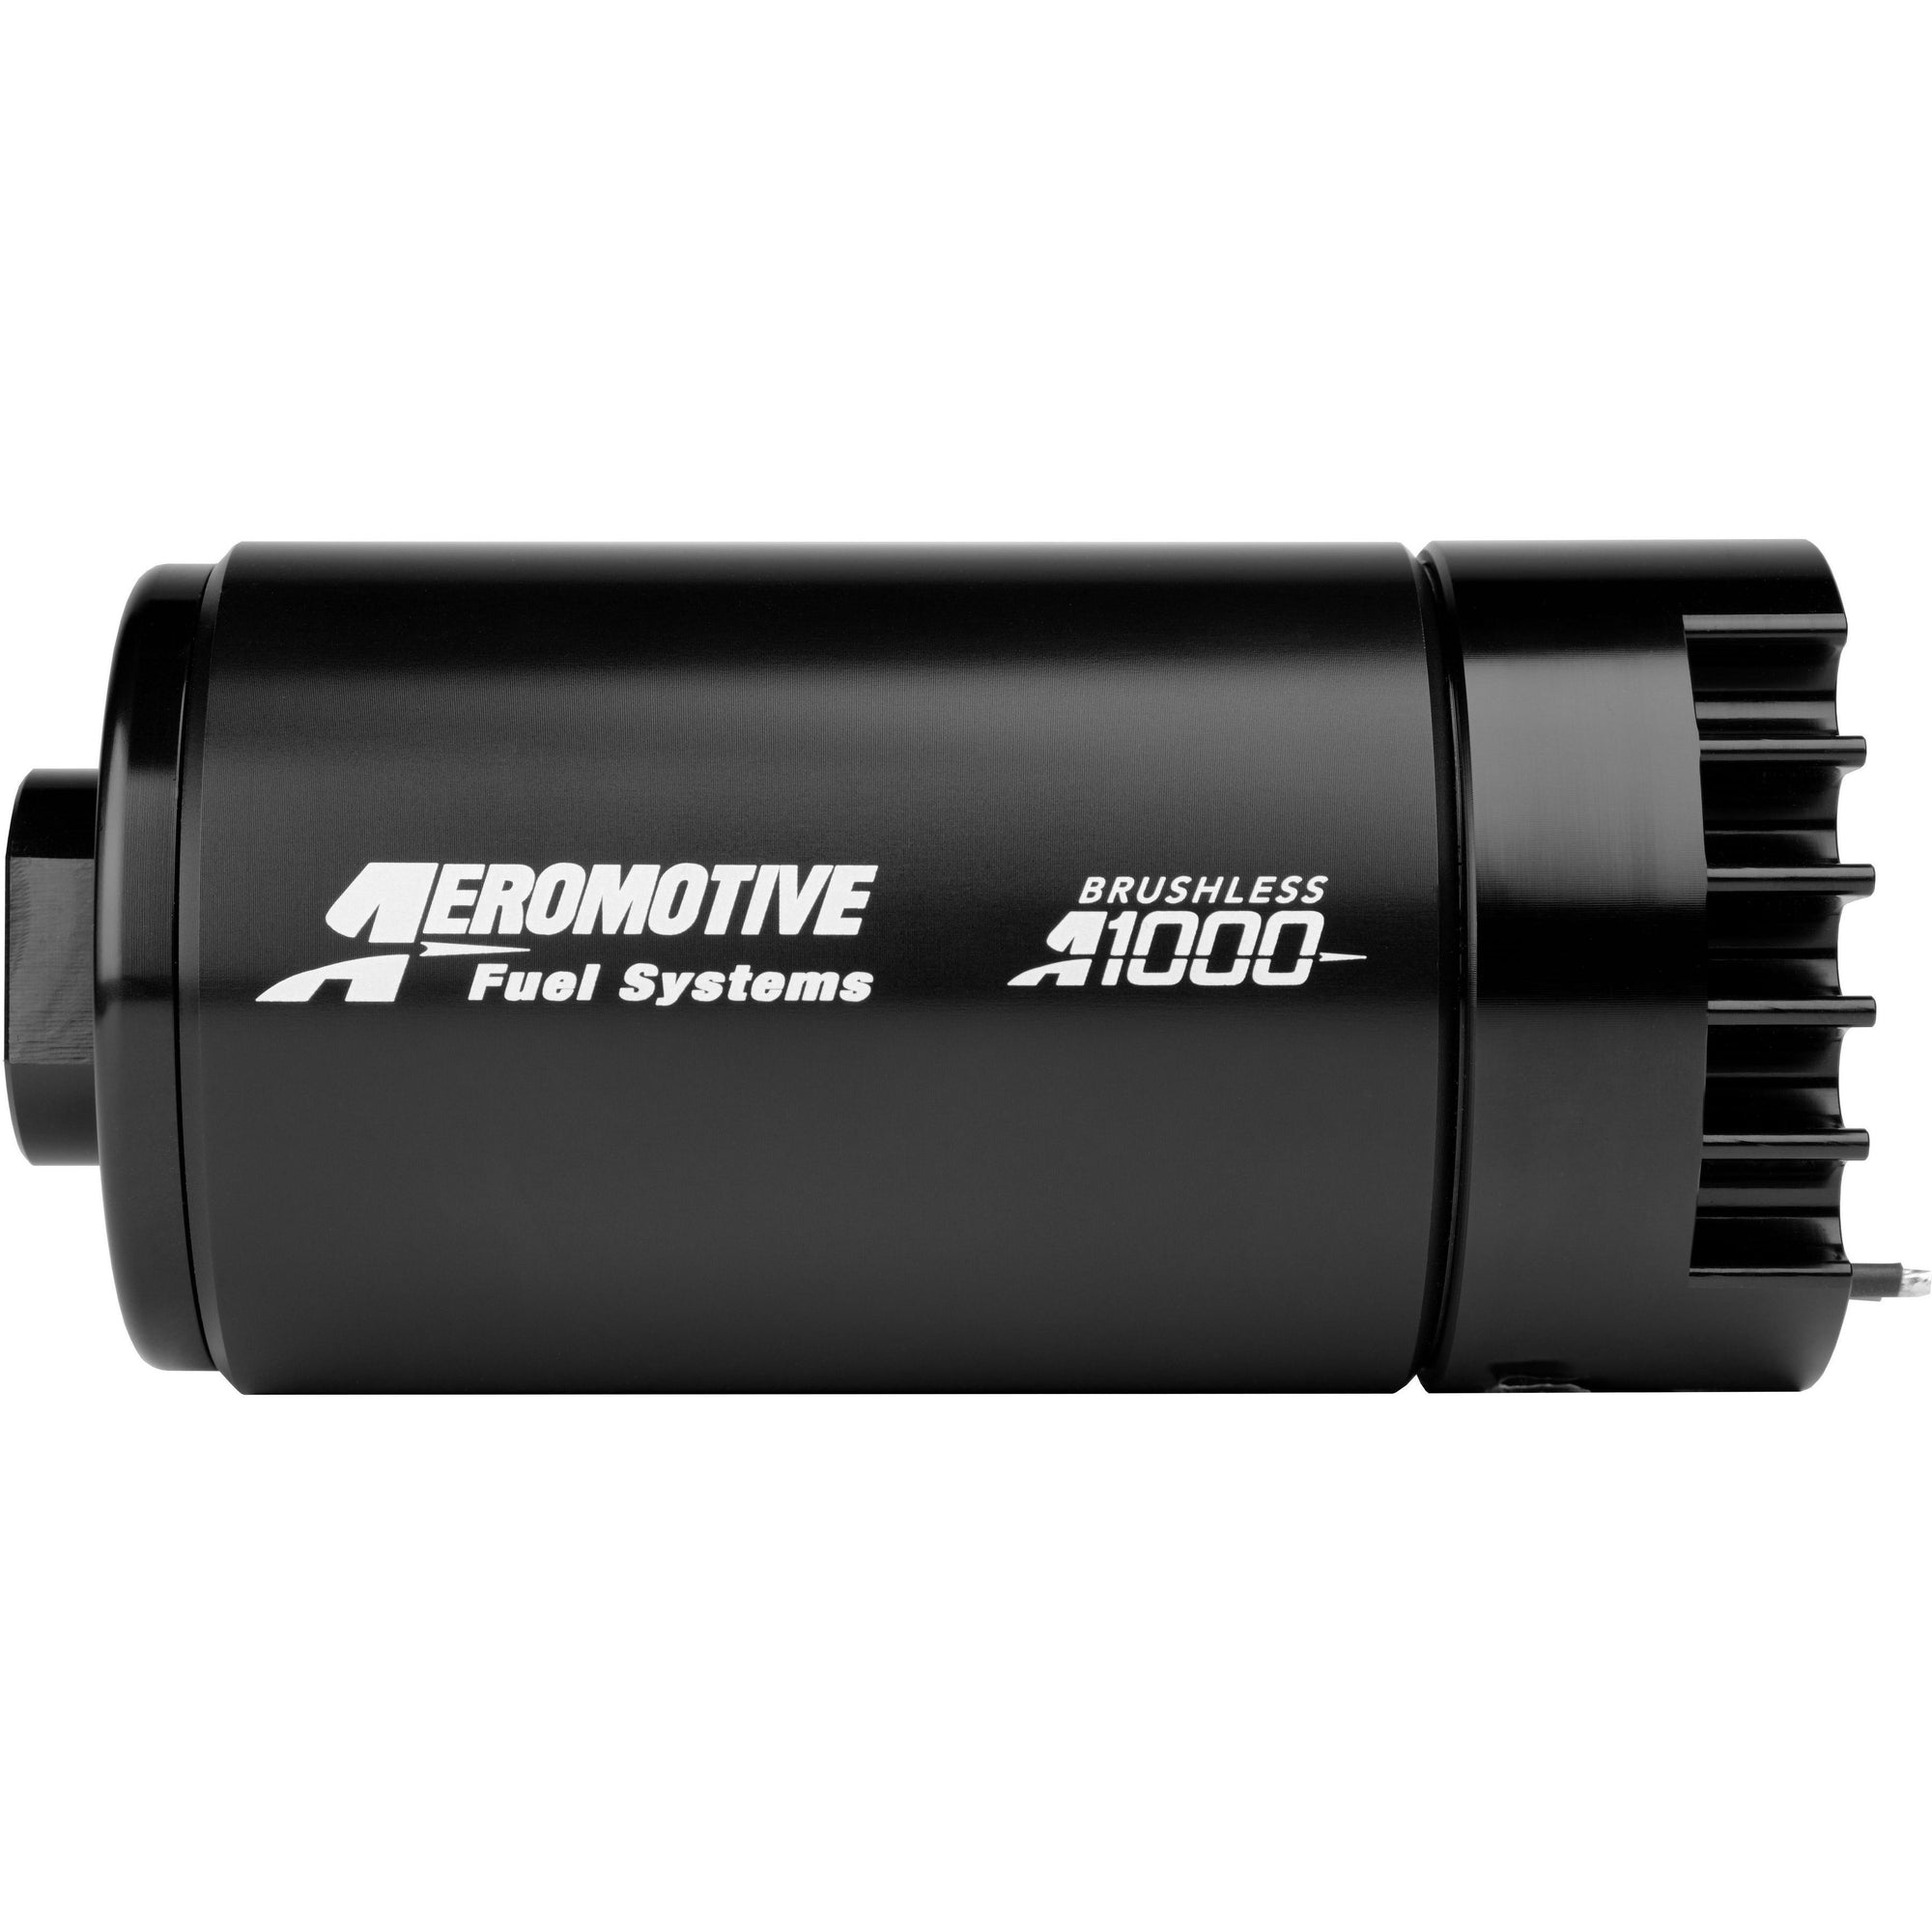 Aeromotive Brushless A1000 Pump, Round 11124-Aeromotive-Motion Raceworks